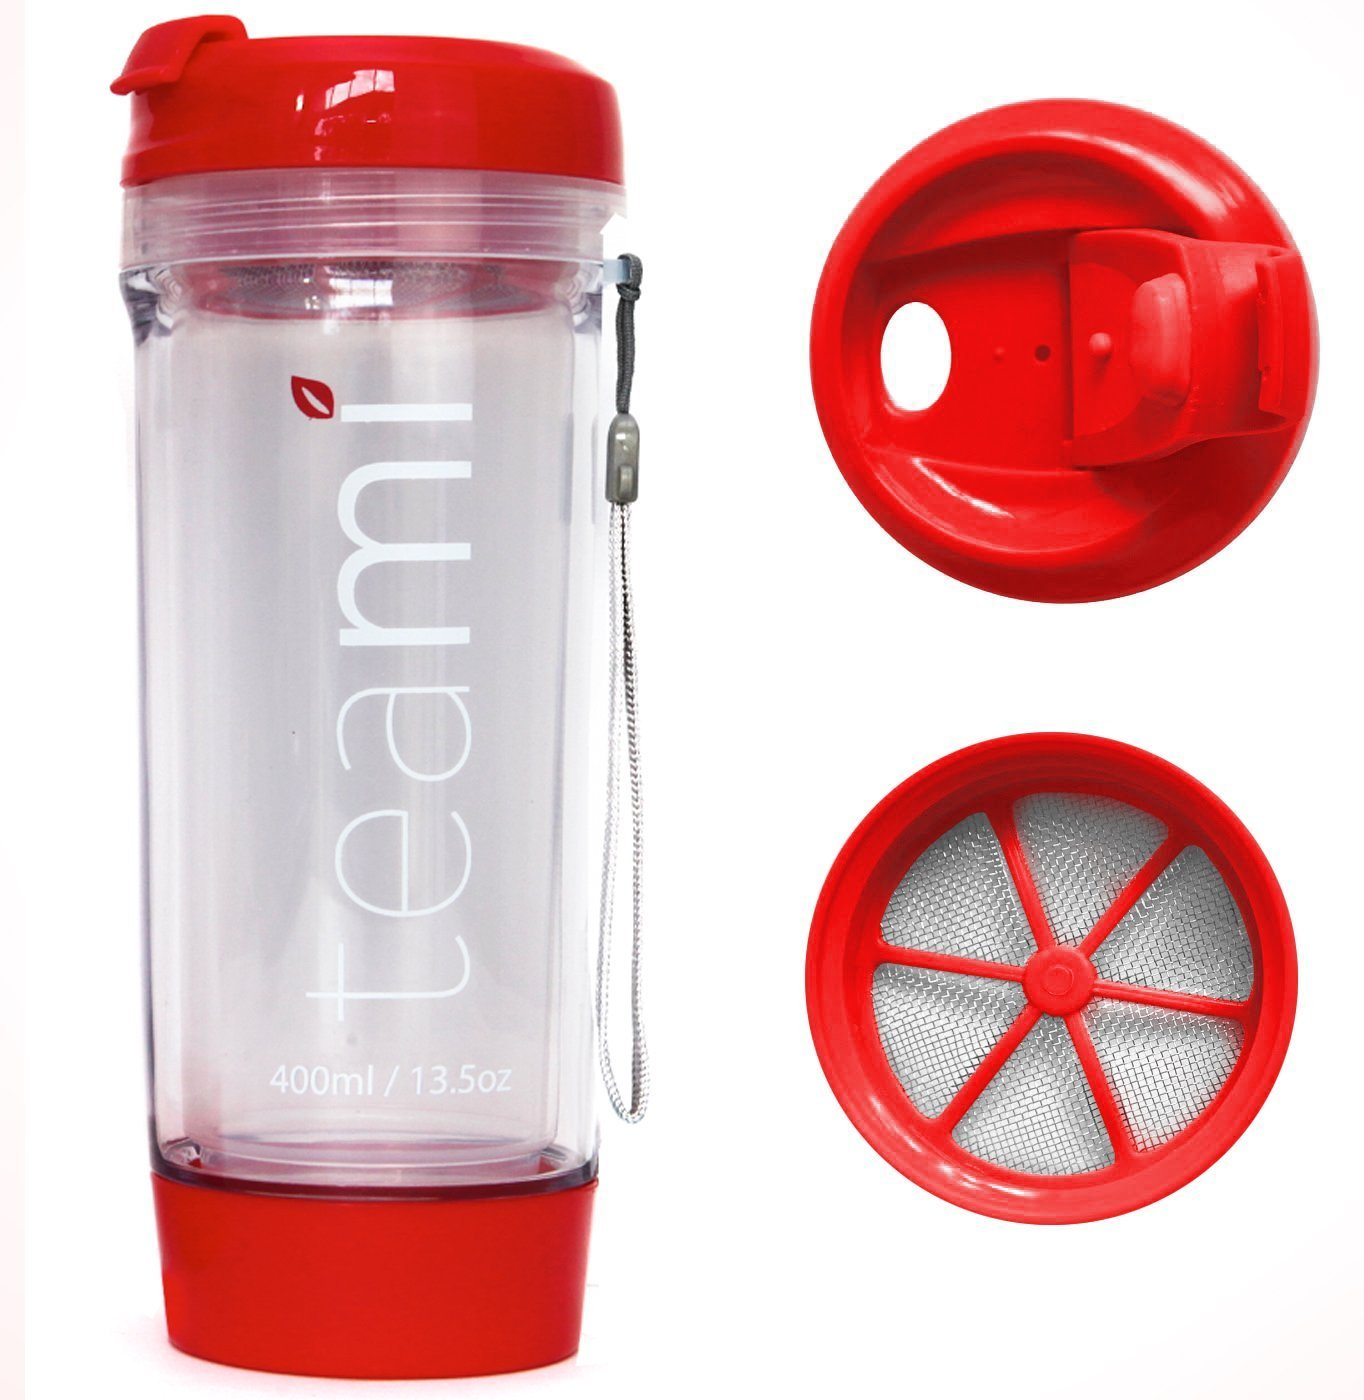 BPA Free Plastic Travel Tea Tumbler by Teami Blends - On The Go Tea Mug with Double Walled - Heat Resistant - Great Accessory for Tea Lovers - Size 13.05 Ounces 400 Milliliters (Red)